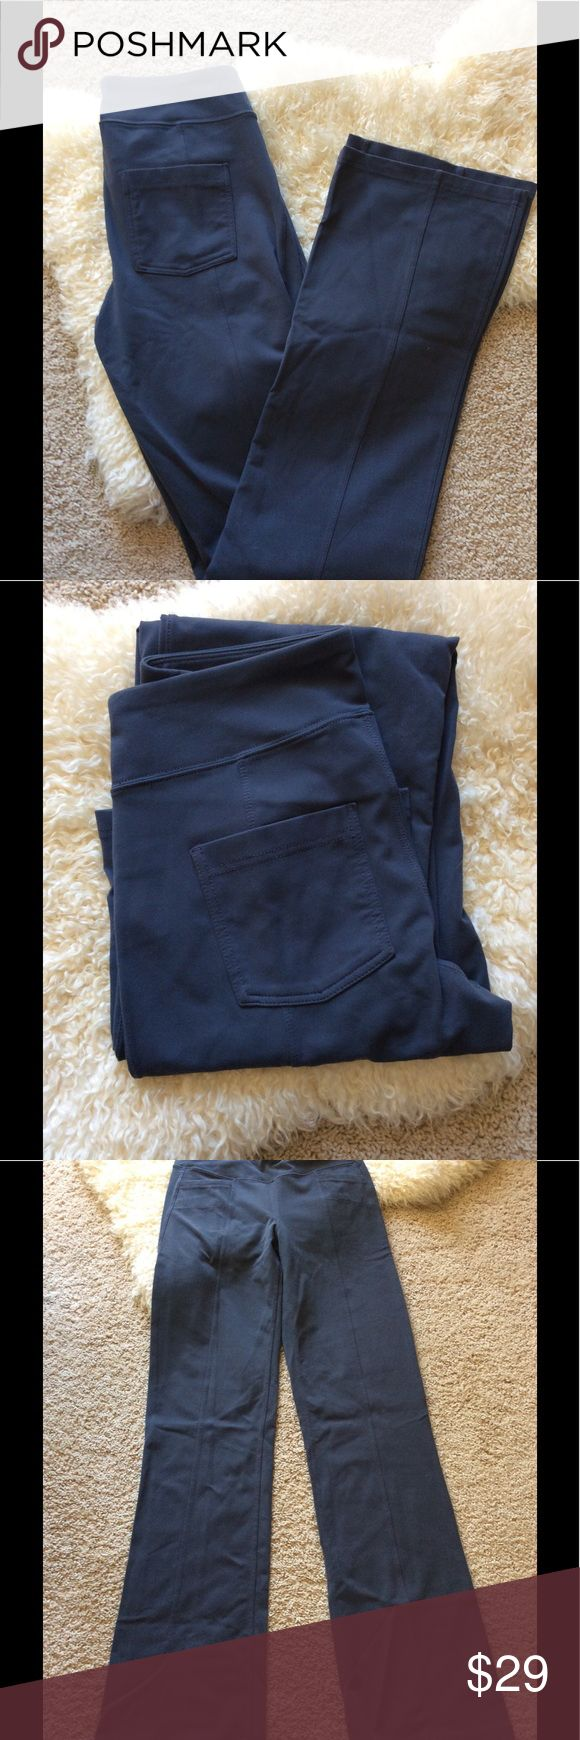 Athleta gray stretch tall yoga pants Beautiful and flawless gray stretchy yoga pants from Athleta. 9 inch rise 28 inch waist 36 inch inseam(extra tall!) made of 88% nylon and 12% spandex. Excellent condition free of stains tears and holes! Athleta Pants